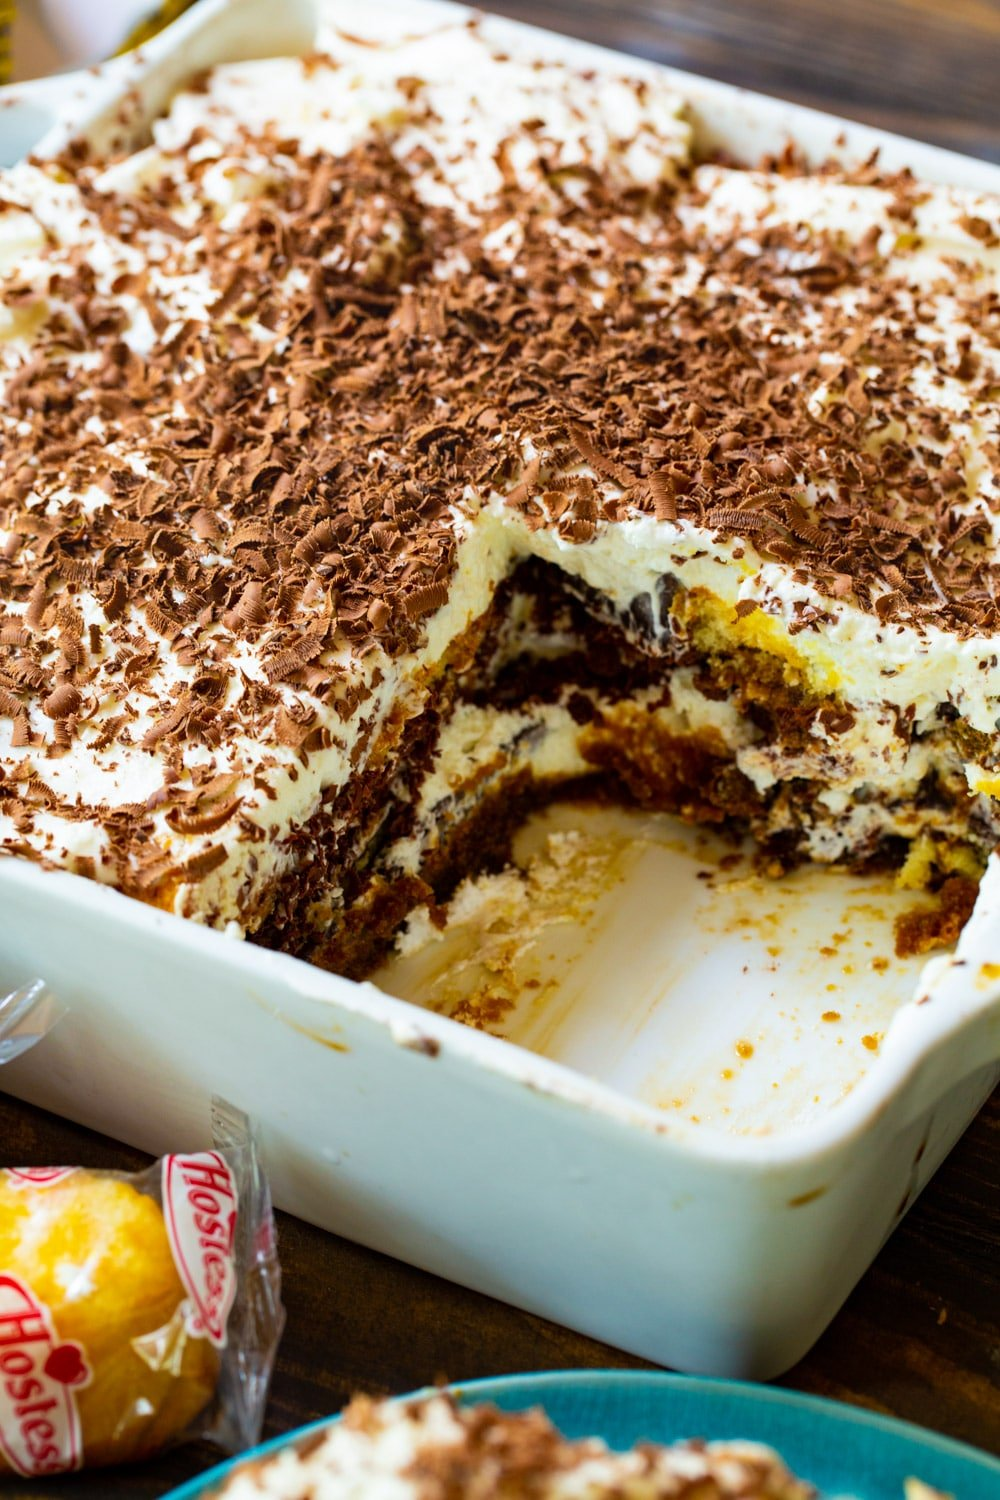 Tiramisu in serving dish with piece cut out.